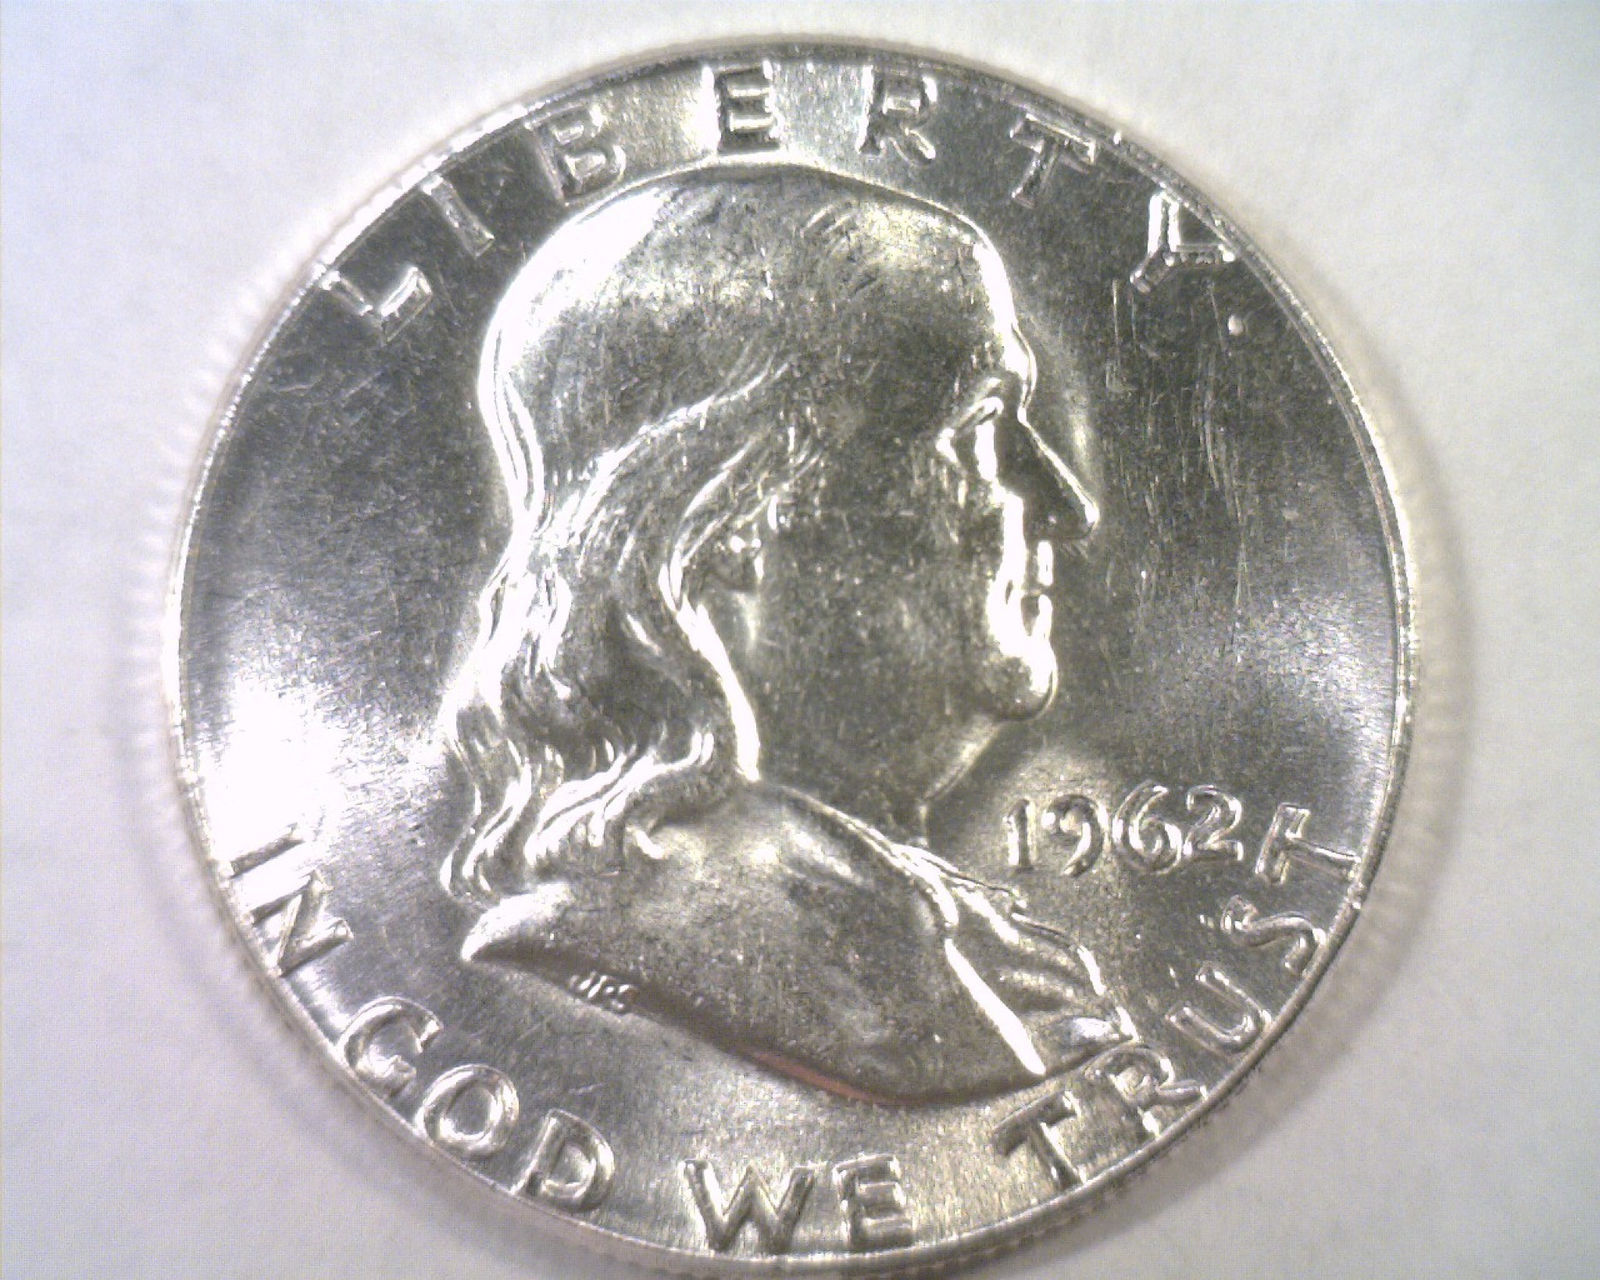 Primary image for 1962 FRANKLIN HALF NICE UNCIRCULATED NICE UNC. ORIGINAL COIN FROM BOBS COINS